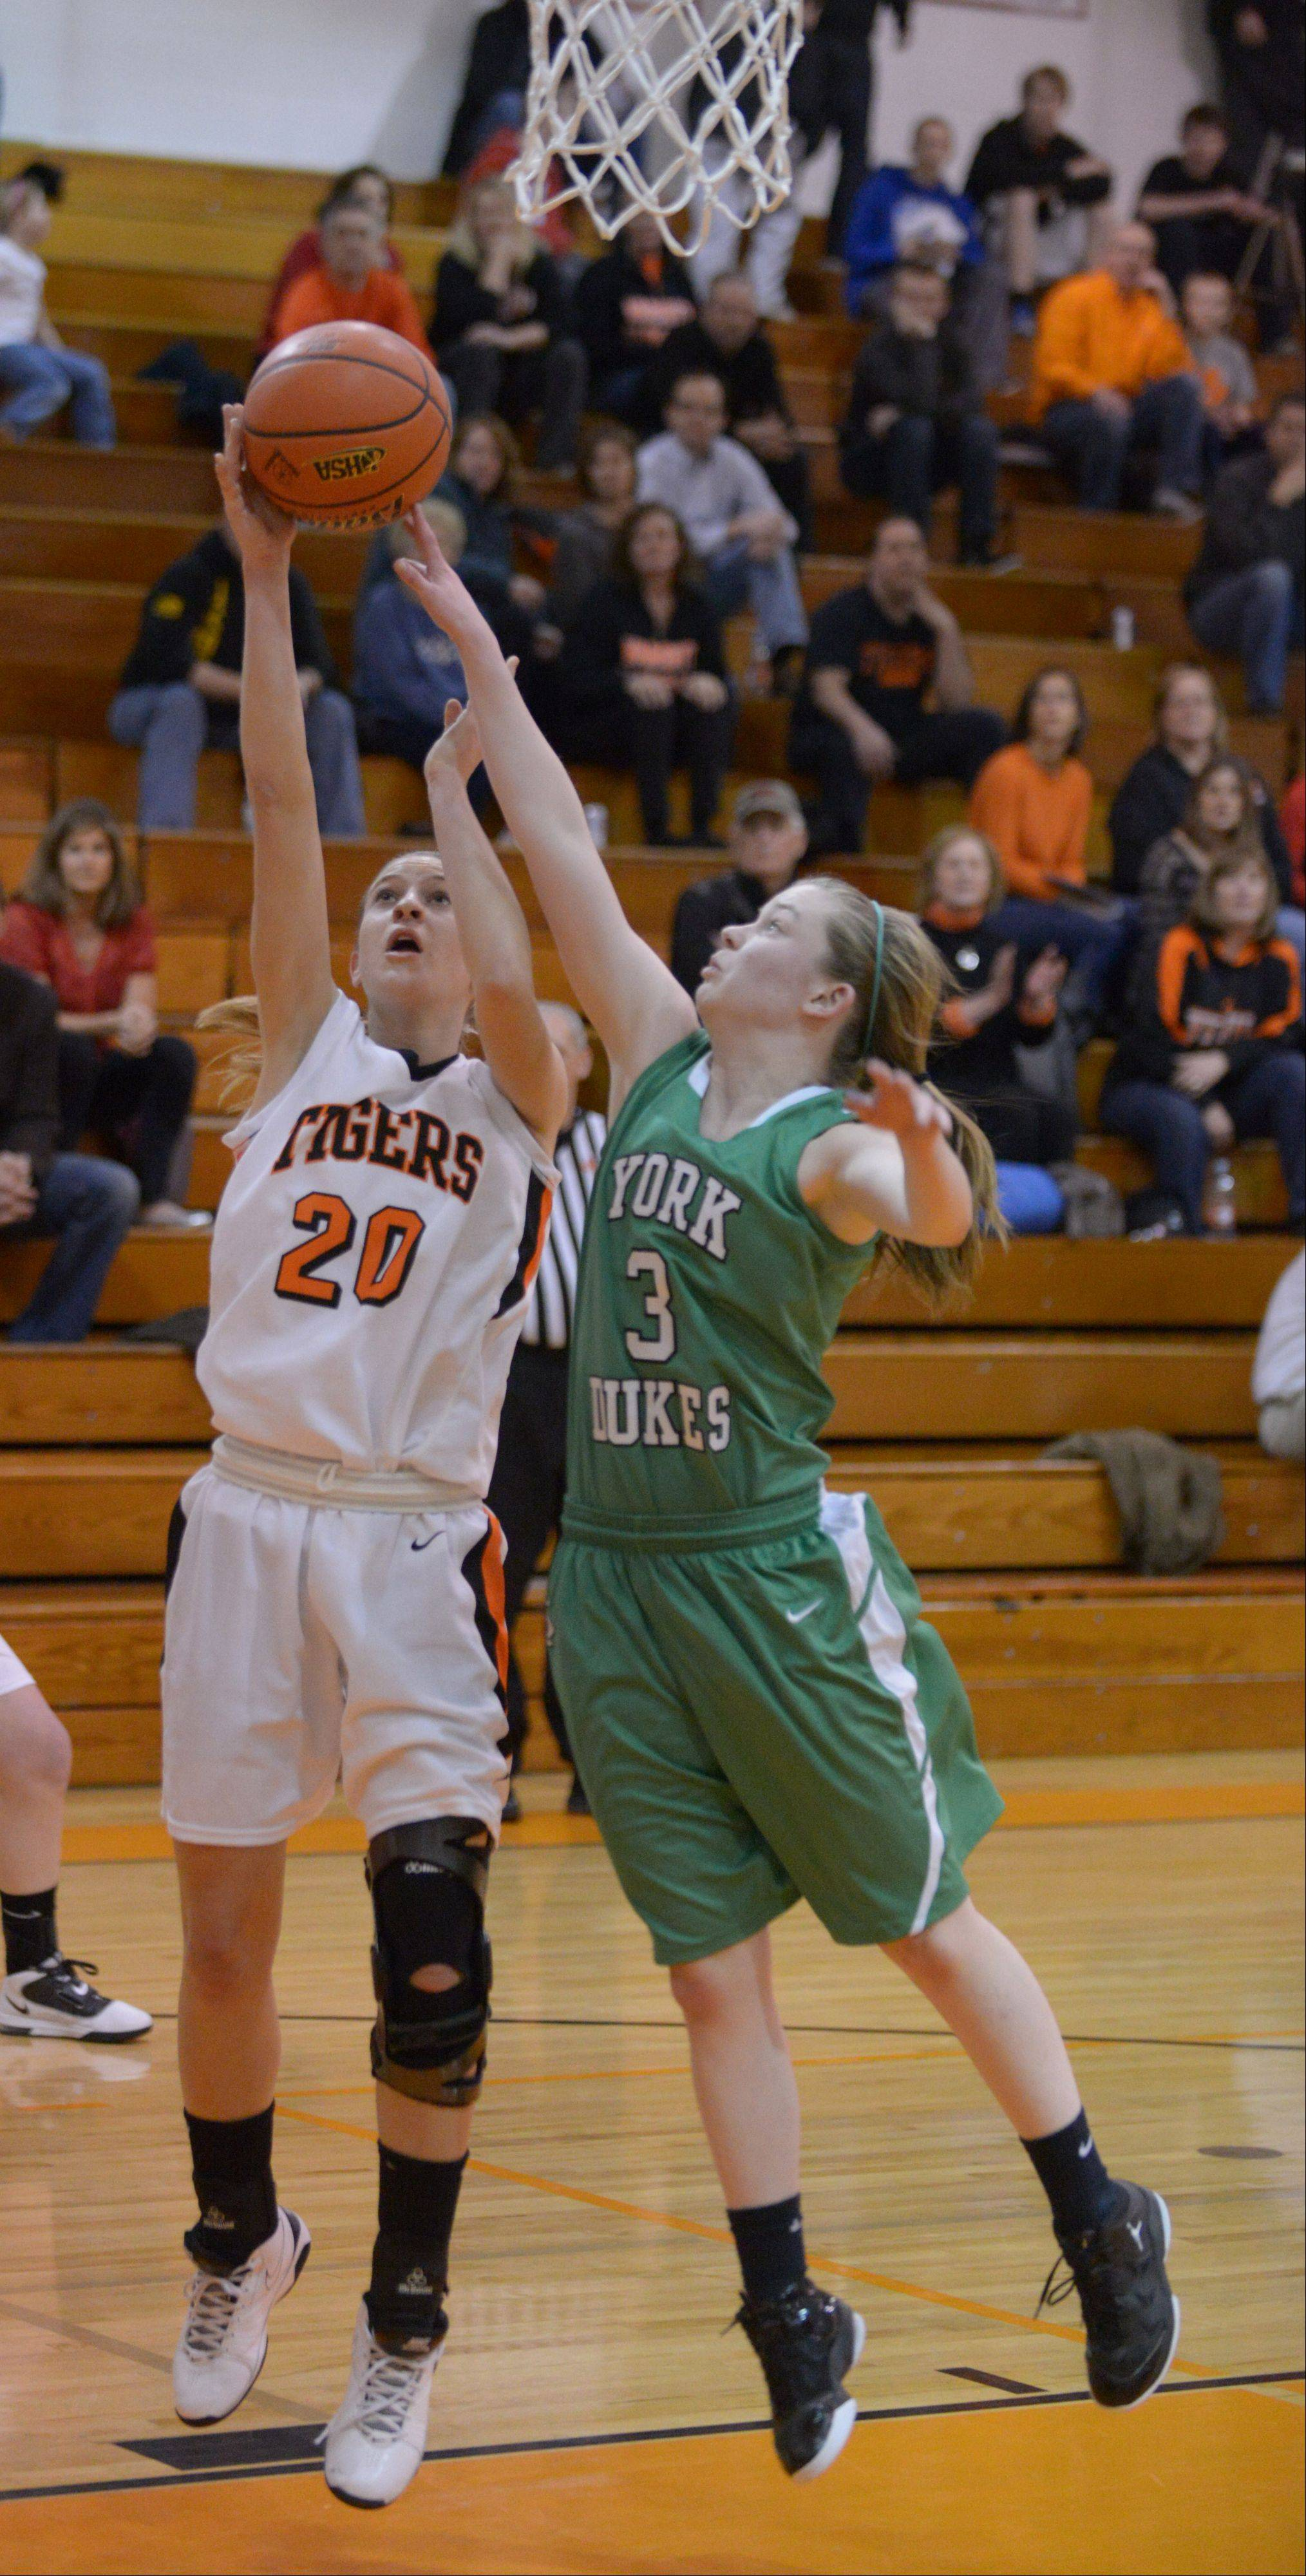 Kelly Langlas of Wheaton Warrenville south,left, and AnnaBell Lansdowne of York go for a rebound.